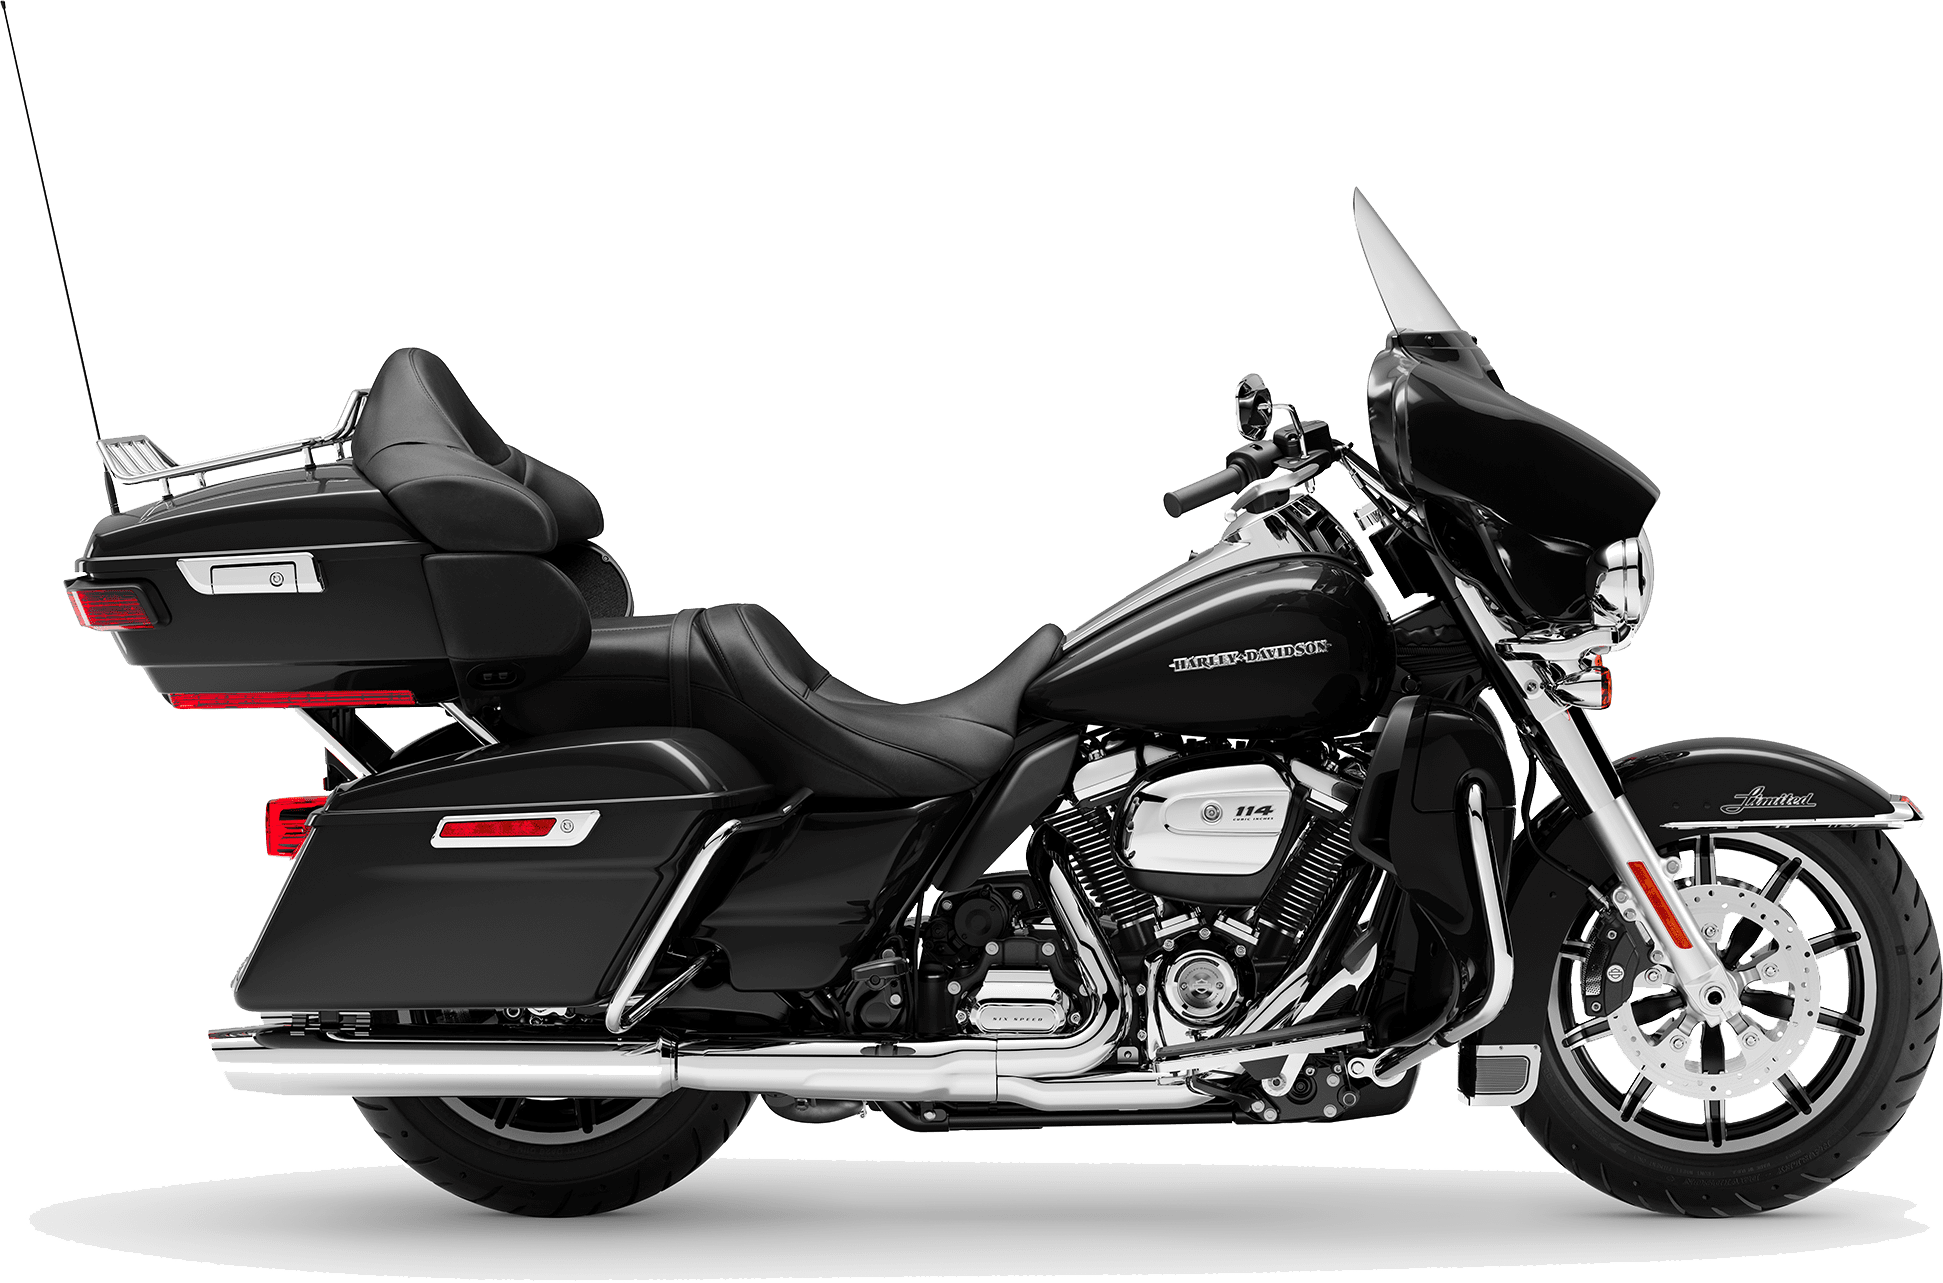 2019 Harley-Davidson H-D Touring Ultra Limited Low Vivid Black